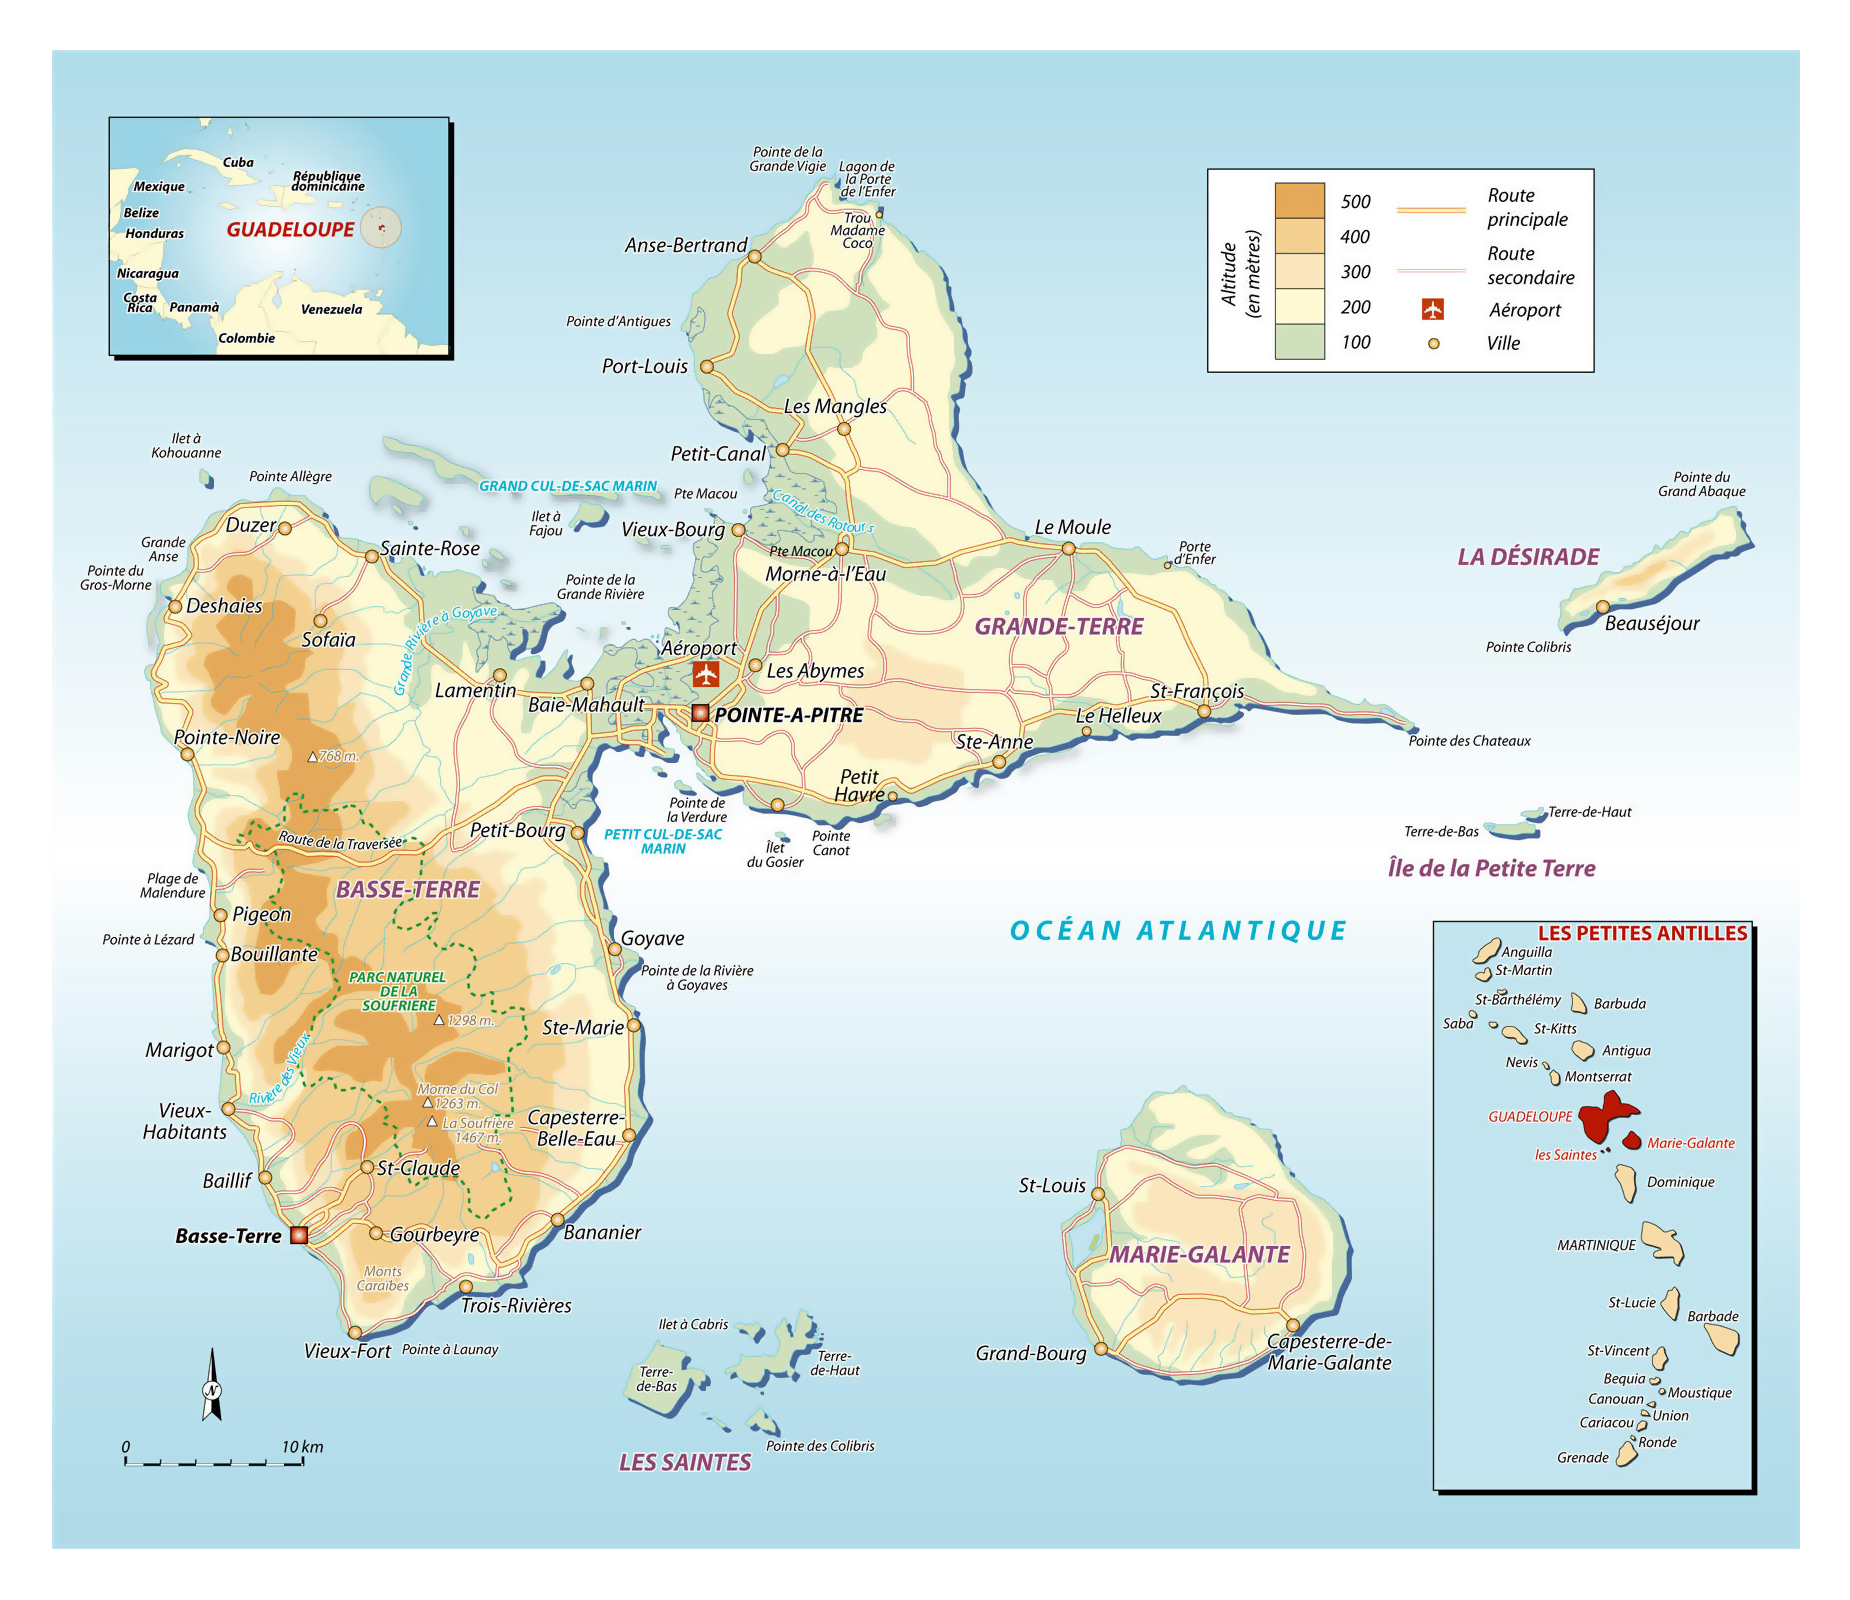 large elevation map of guadeloupe with roads cities and other marks. large elevation map of guadeloupe with roads cities and other